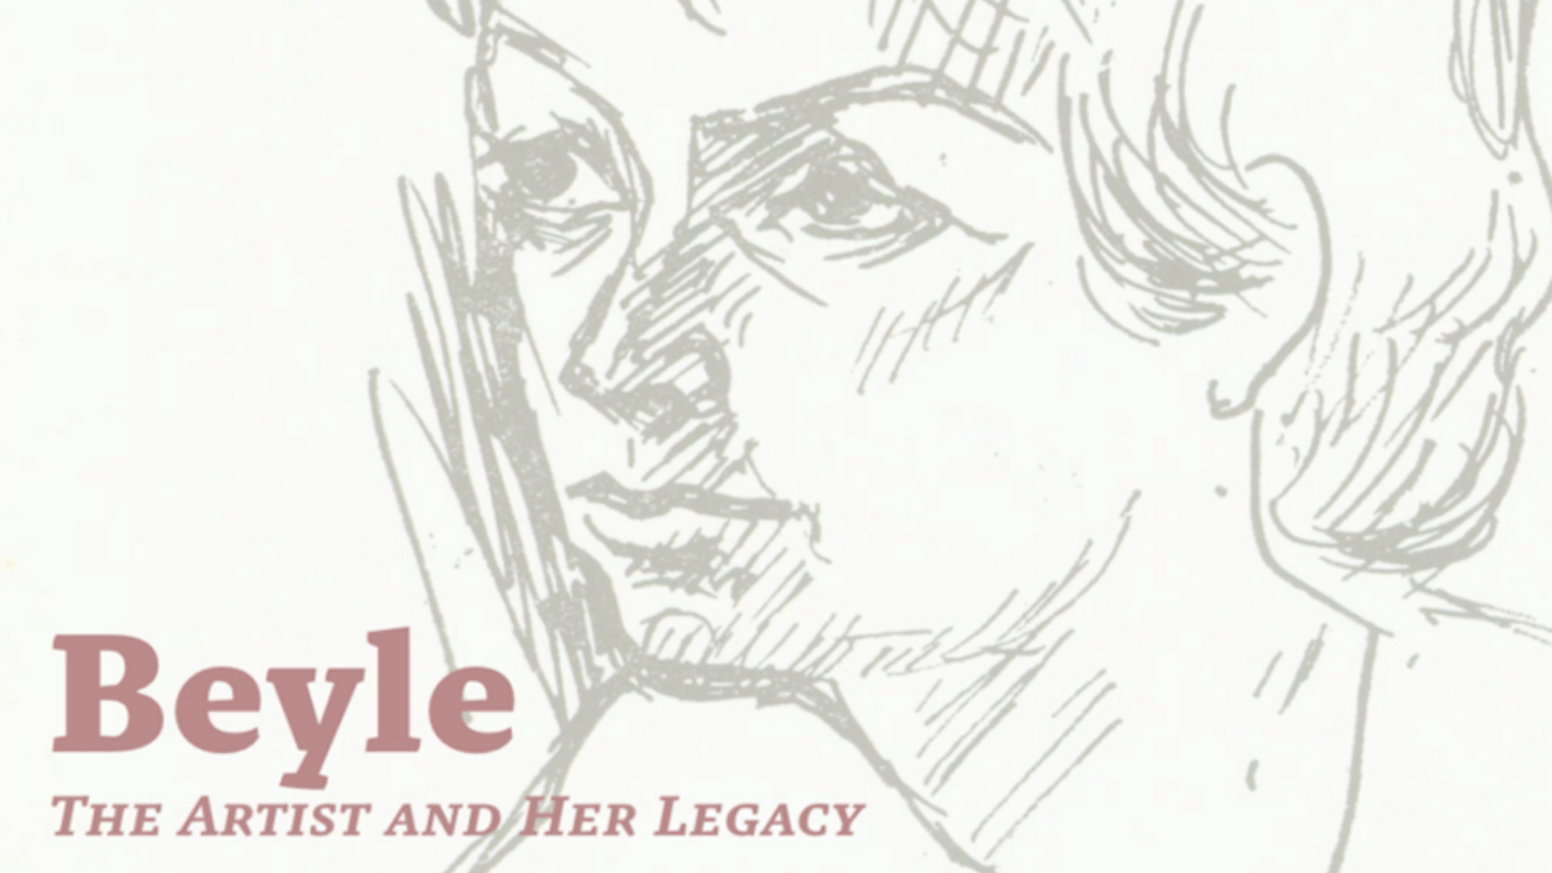 BEYLE, a documentary short film, explores the life and legacy of Yiddish activist and artist Beyle Schaechter-Gottesman.